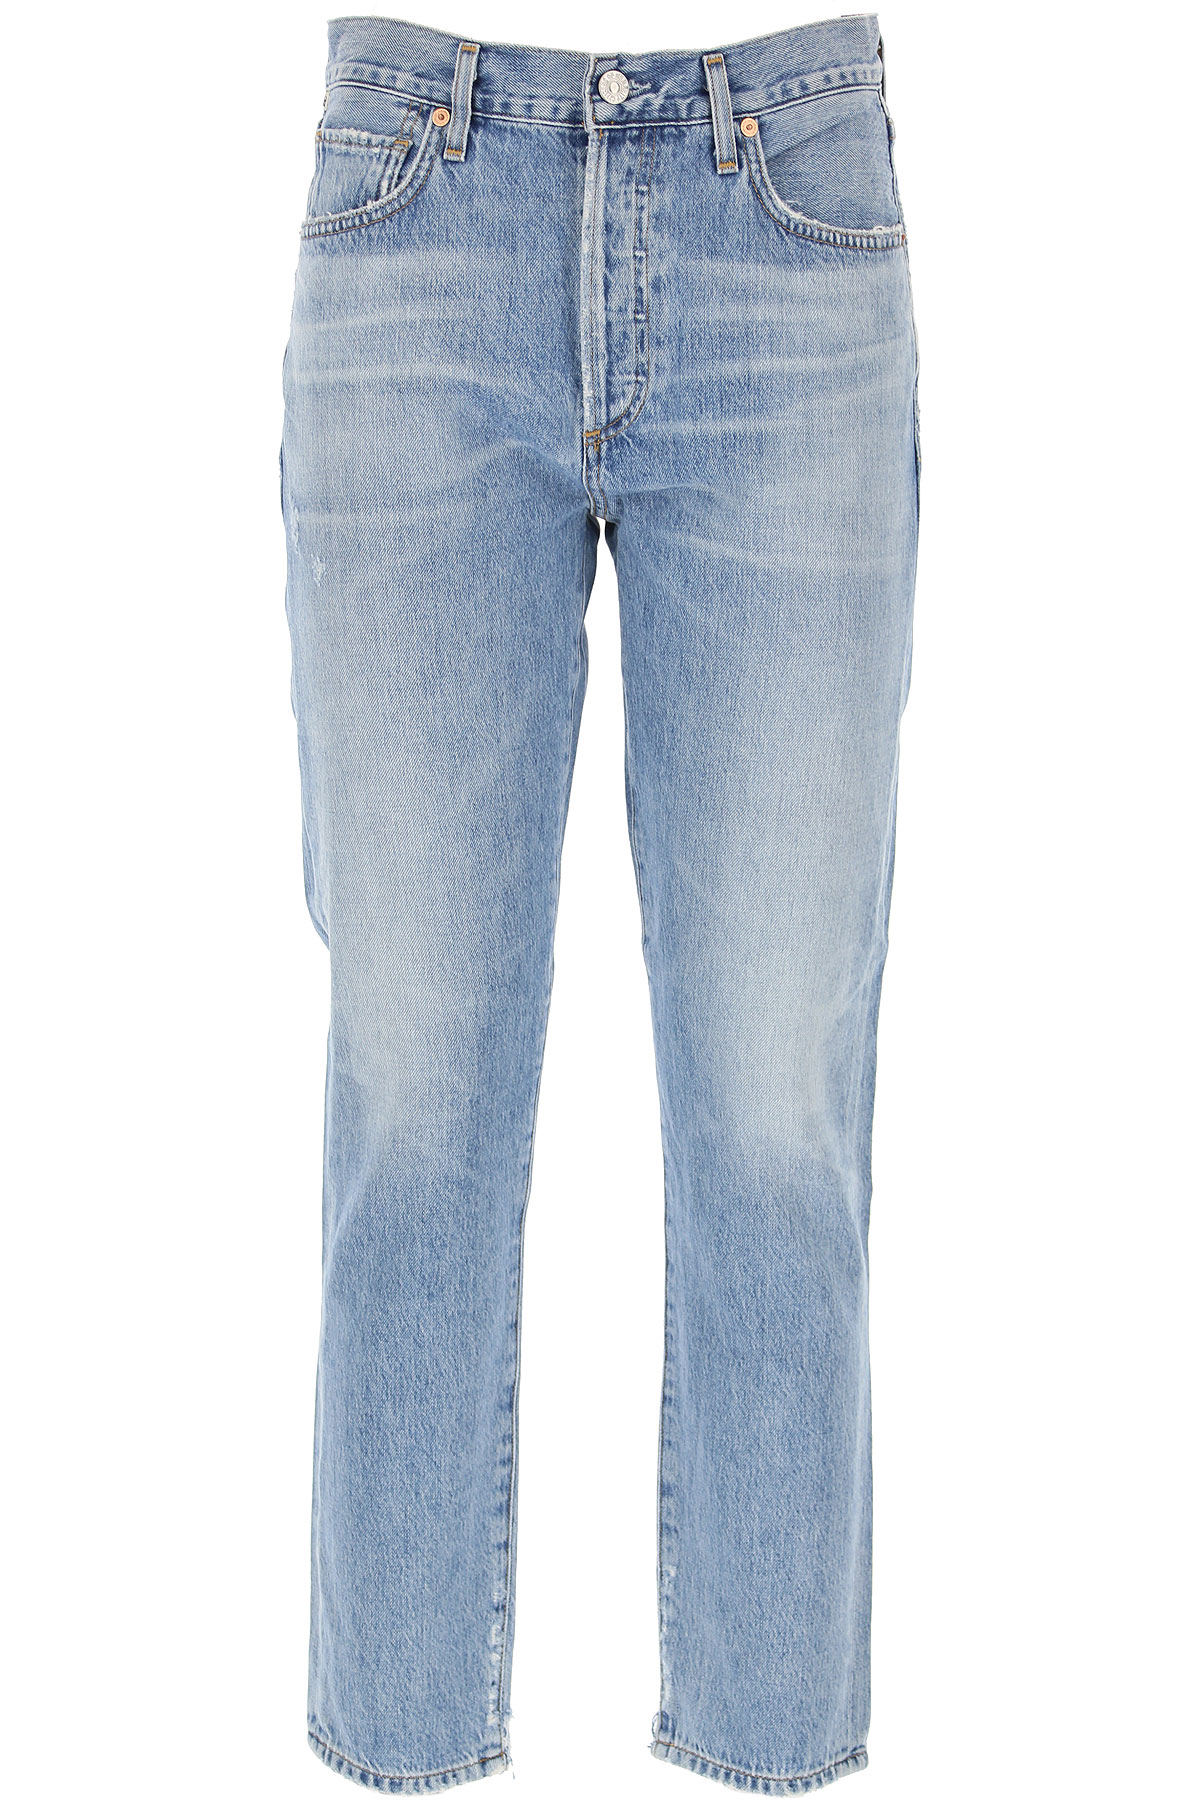 Citizens of Humanity Jeans On Sale, Denim Blue, Cotton, 2019, 25 26 27 28